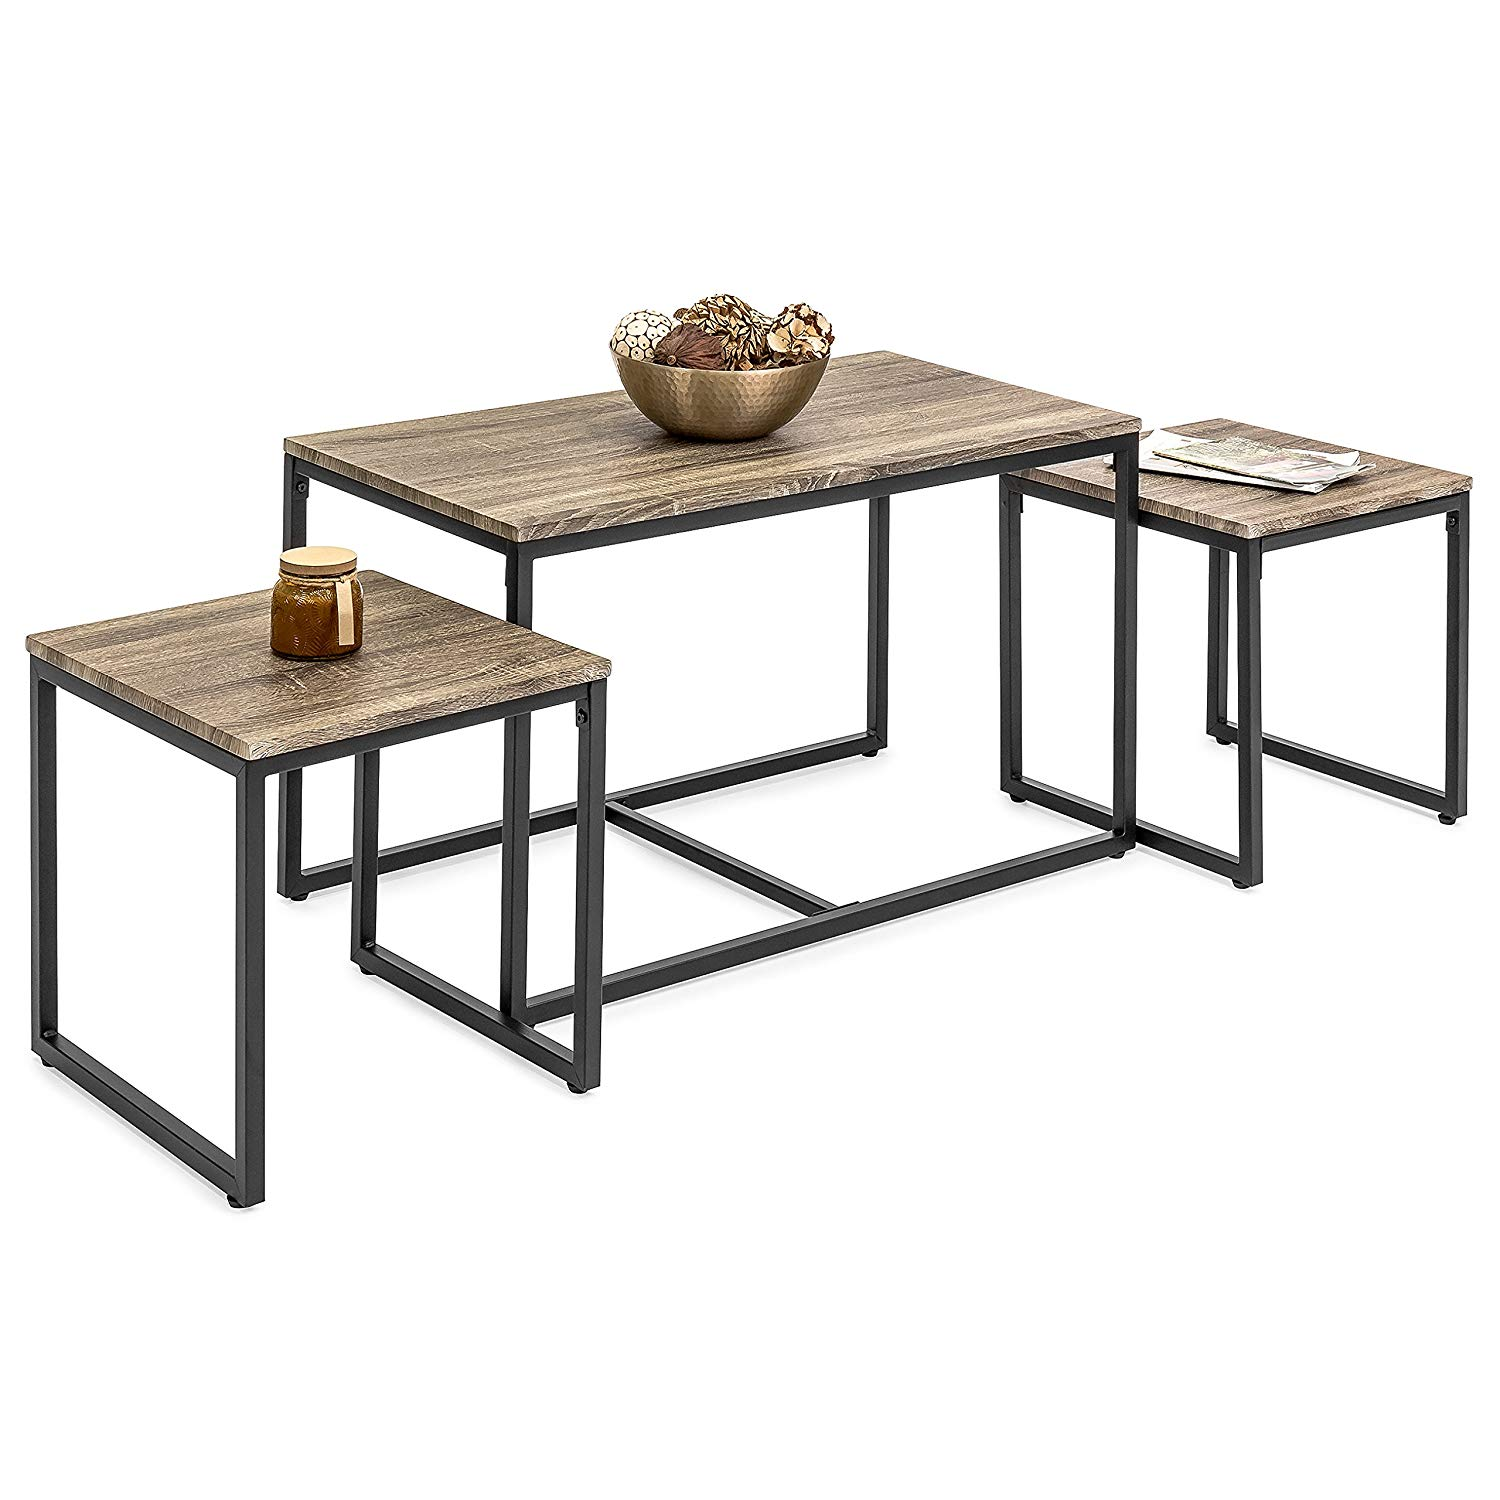 best choice products piece modern lightweight nesting accent tables coffee table living room furniture lounge set end brown kitchen tier antique mirrored console ikea garden